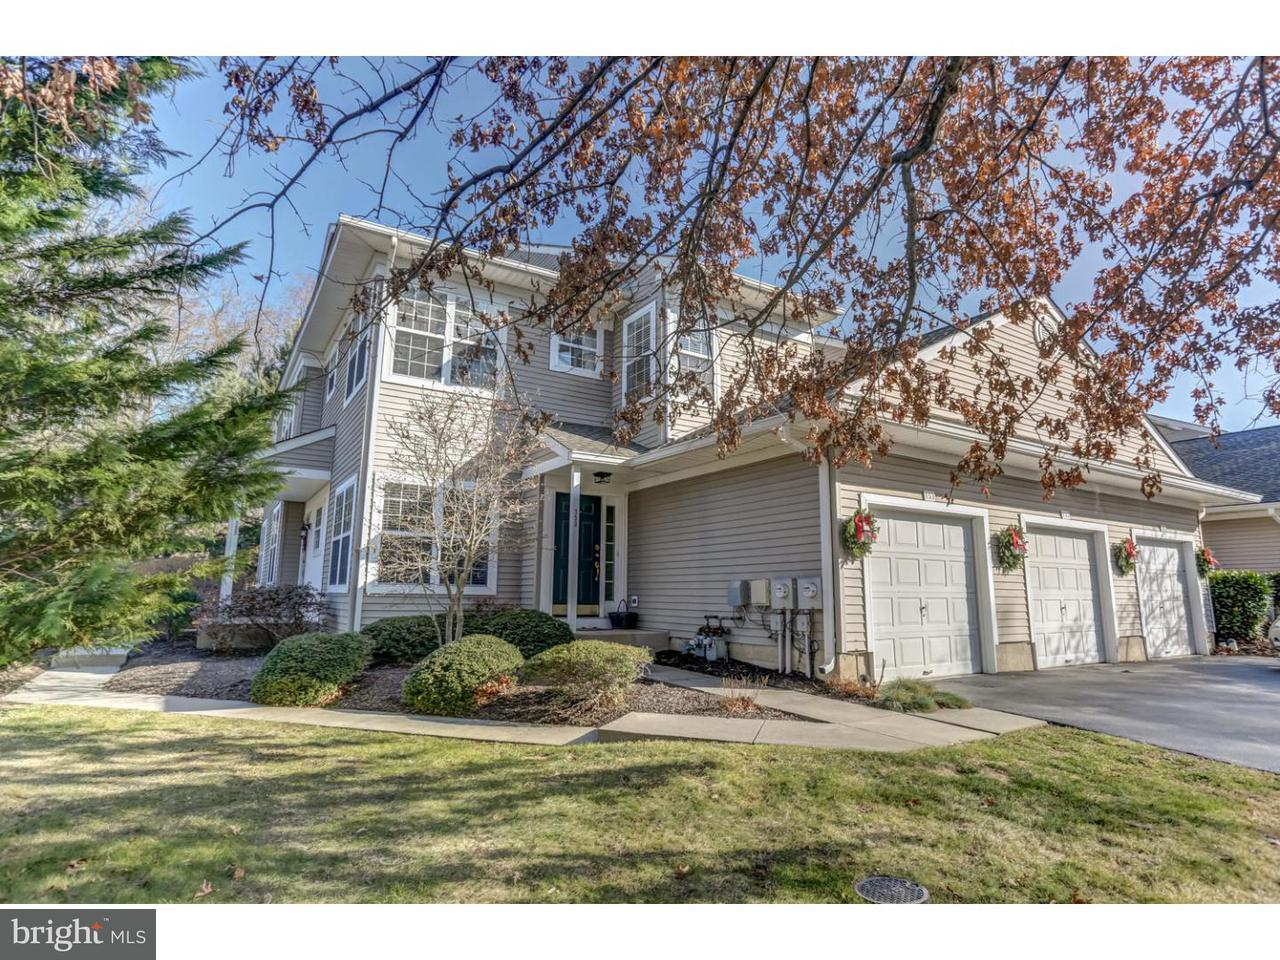 Single Family Home for Rent at 153 STEWARTS CT #505 Phoenixville, Pennsylvania 19460 United States